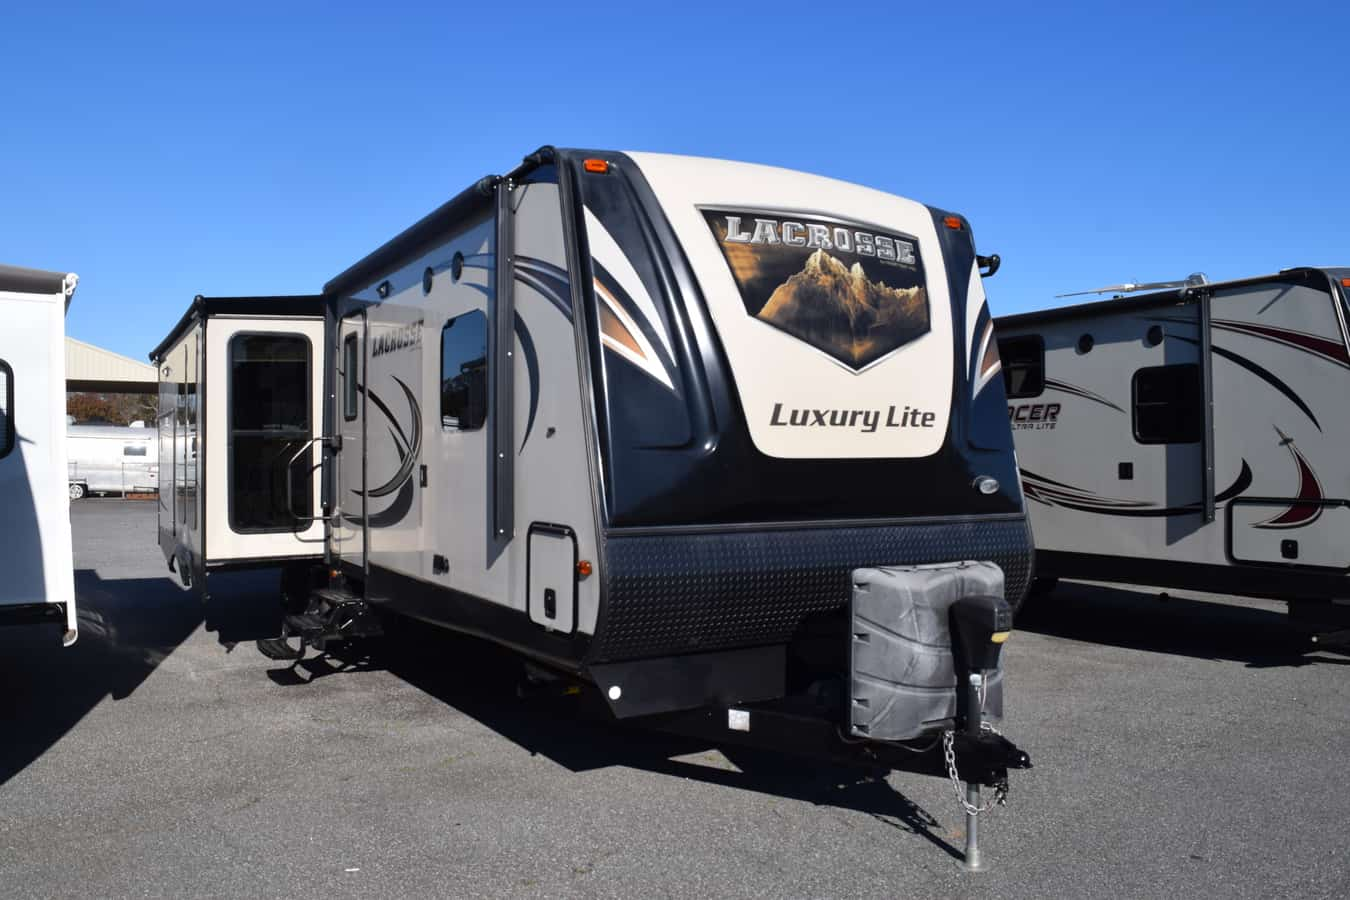 USED 2016 Prime Time LACROSSE 330RST